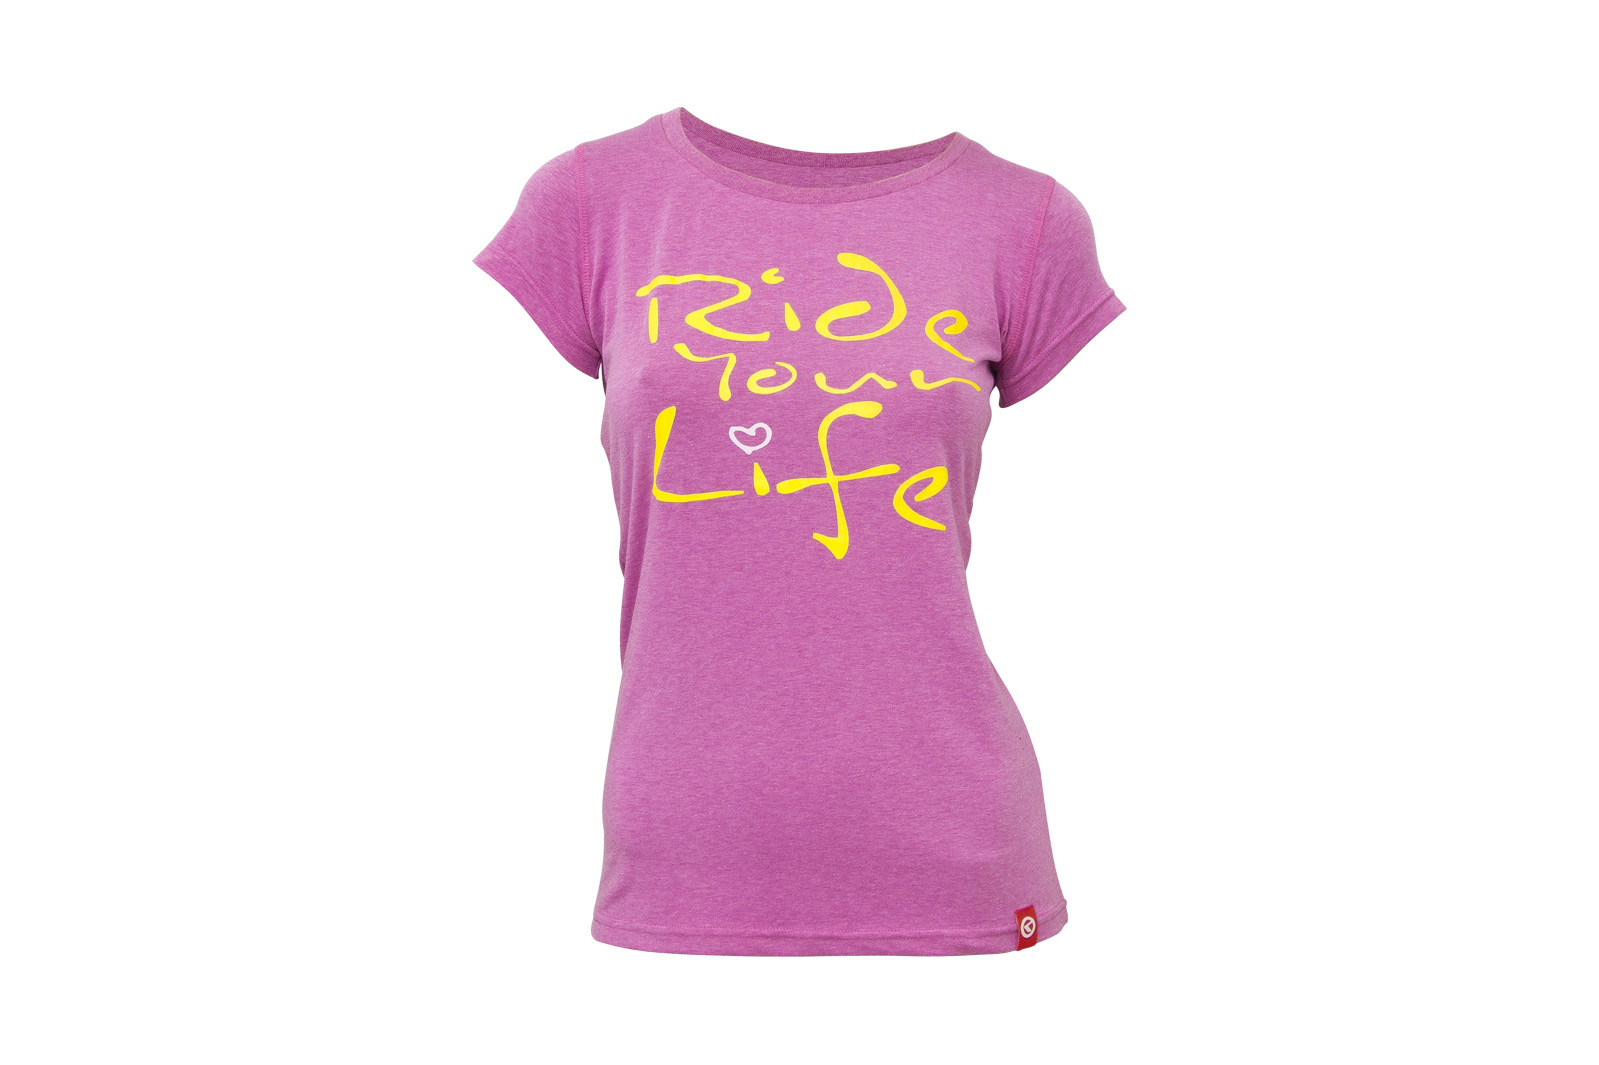 T-Shirt KELLYS WOMEN´S RIDE YOUR LIFE kurzarm Pink - XL - Mega Handelsgesellschaft